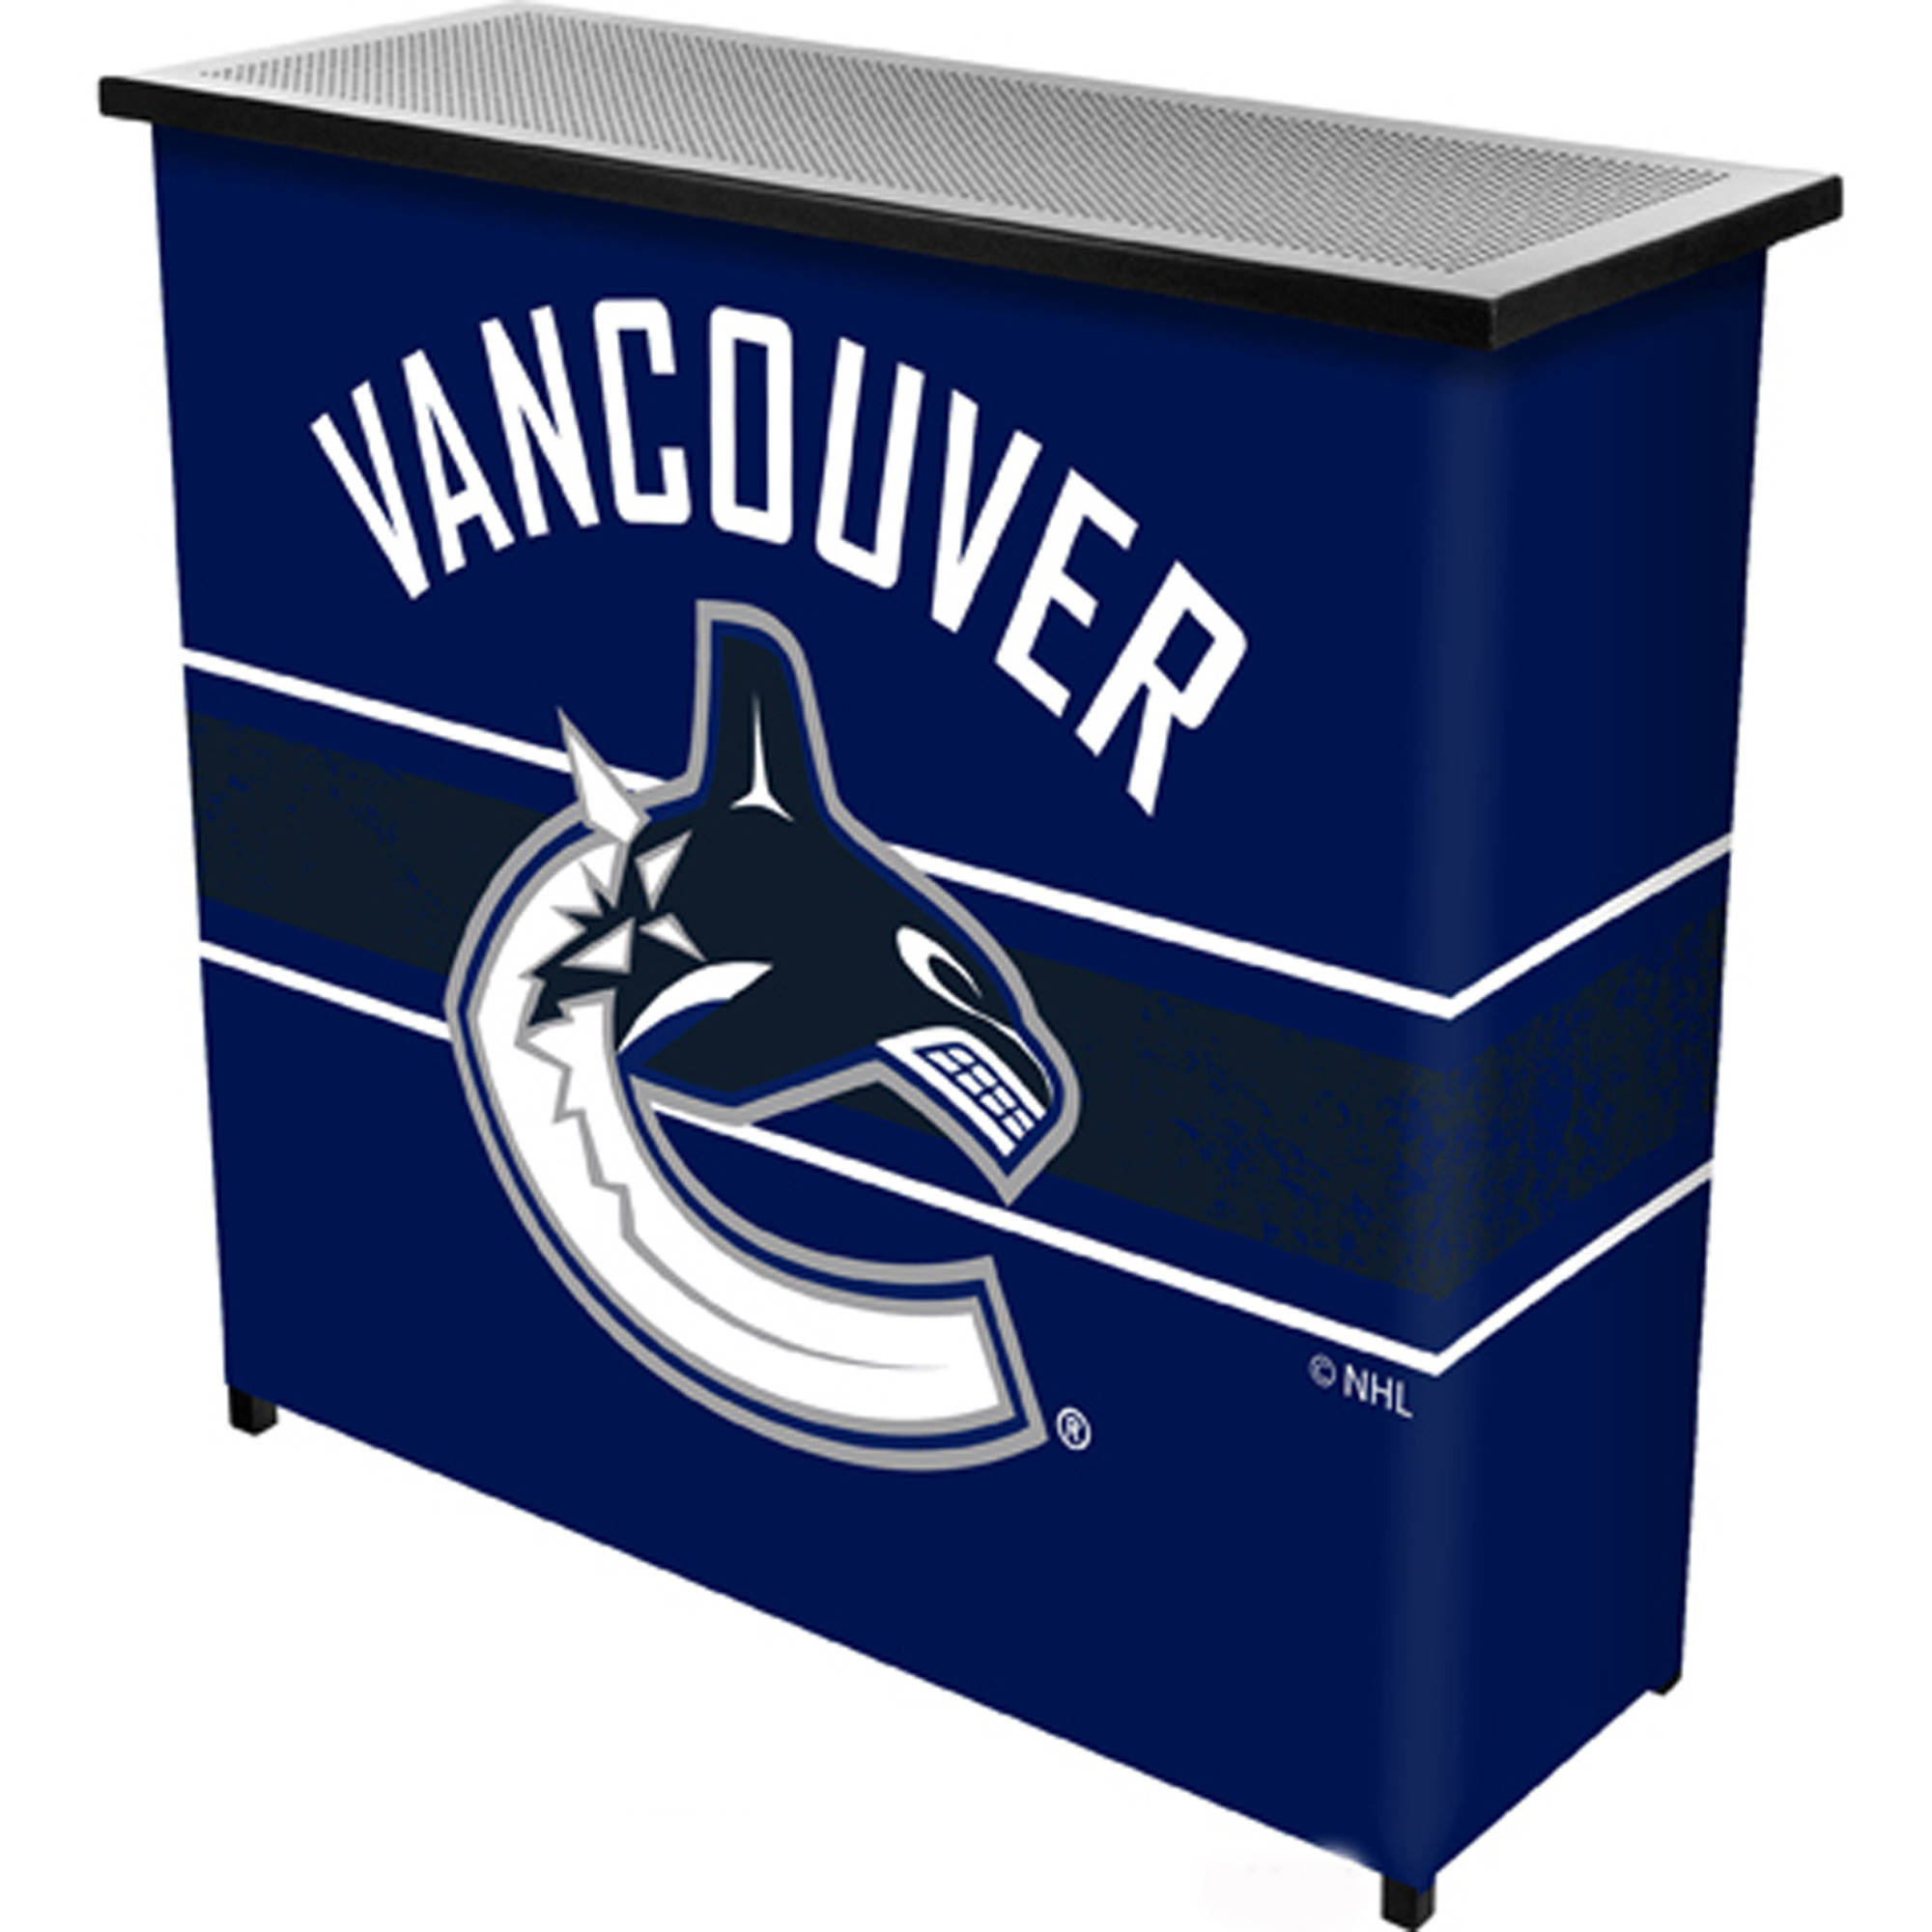 NHL Portable Bar with Carrying Case, Vancouver Canucks